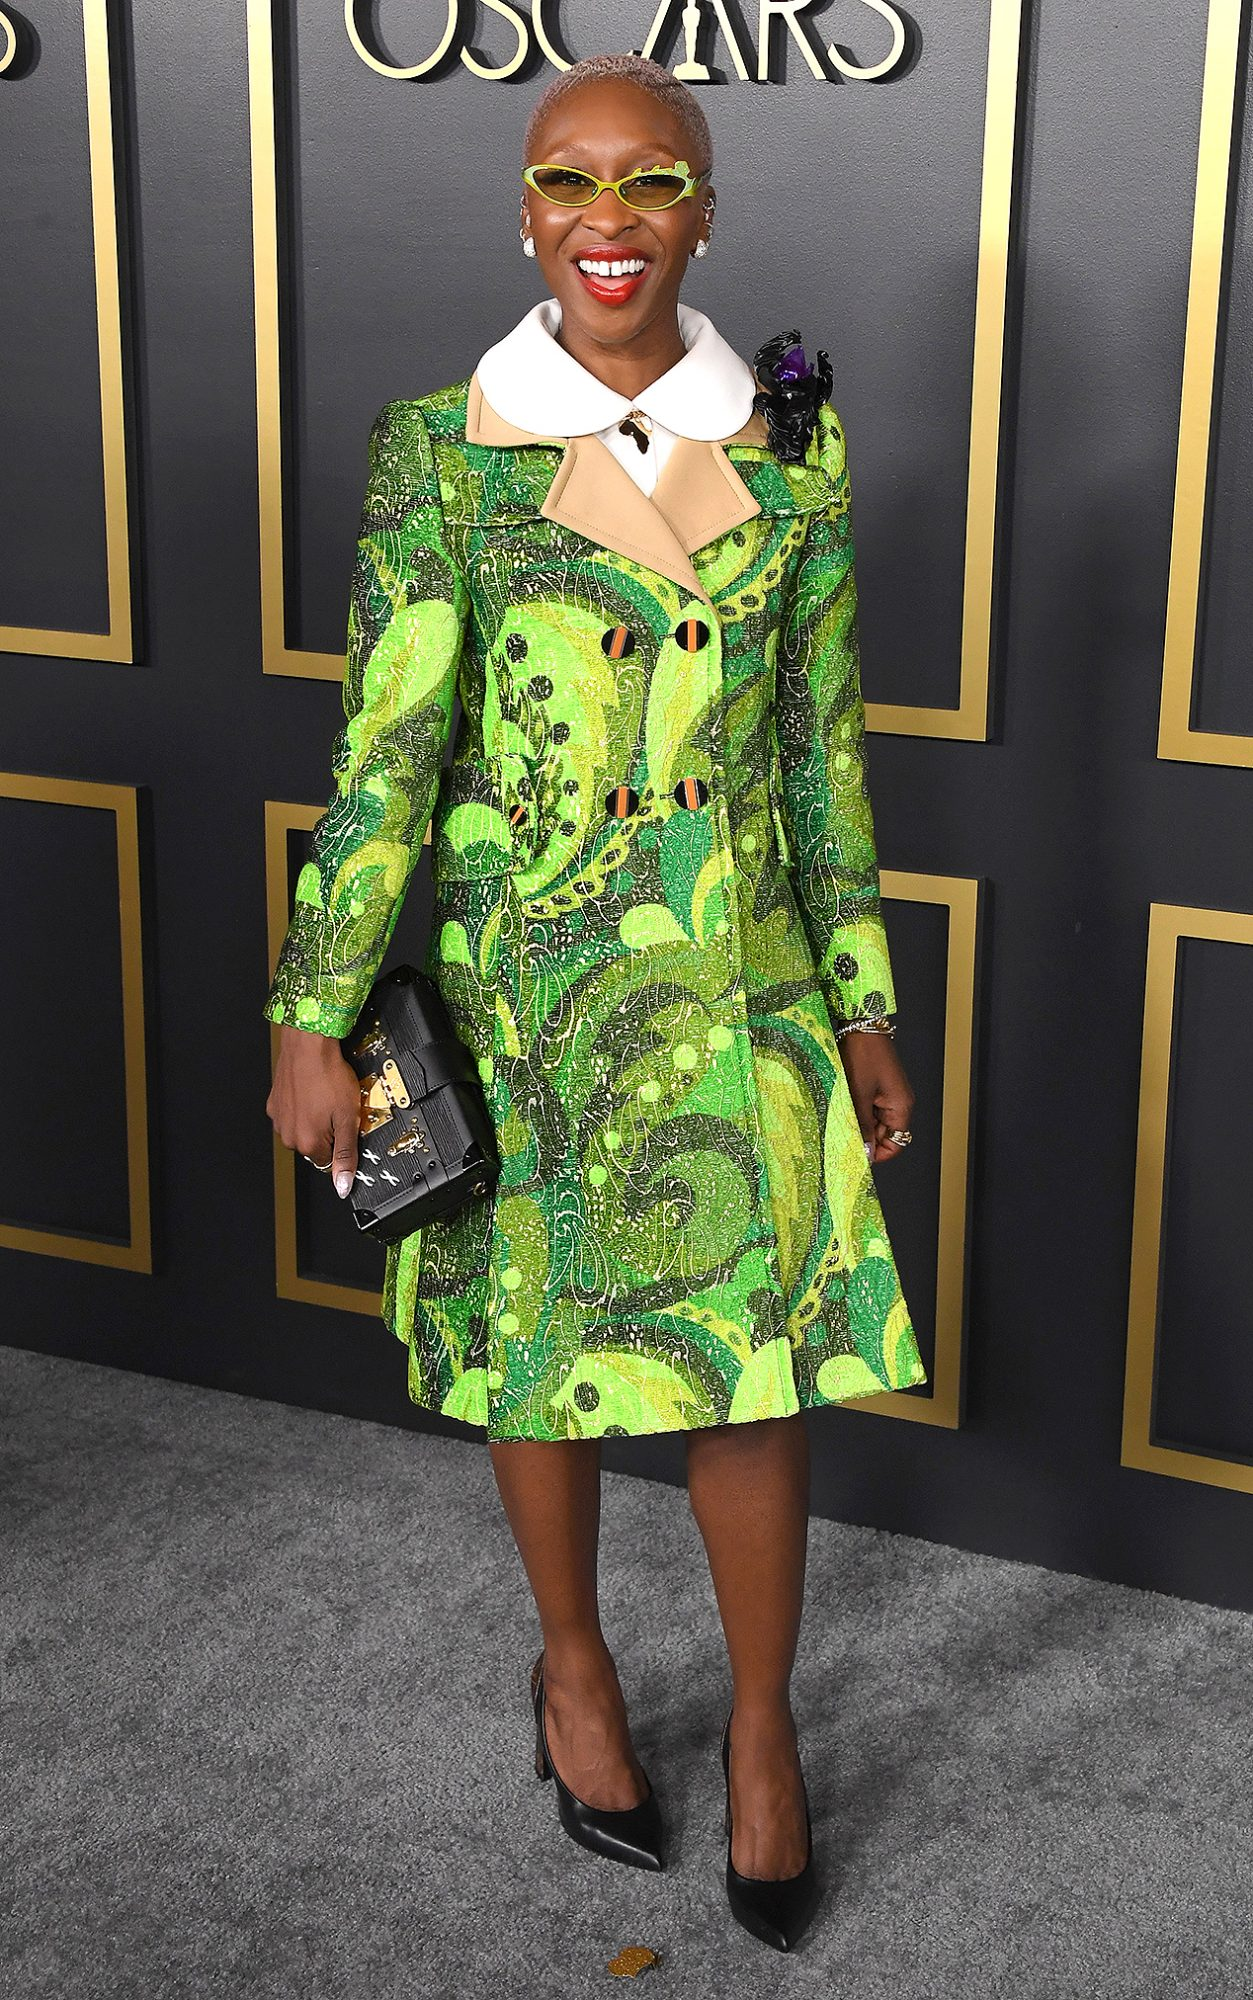 Cynthia Erivo arrives at the 92nd Oscars Nominees Luncheon on January 27, 2020